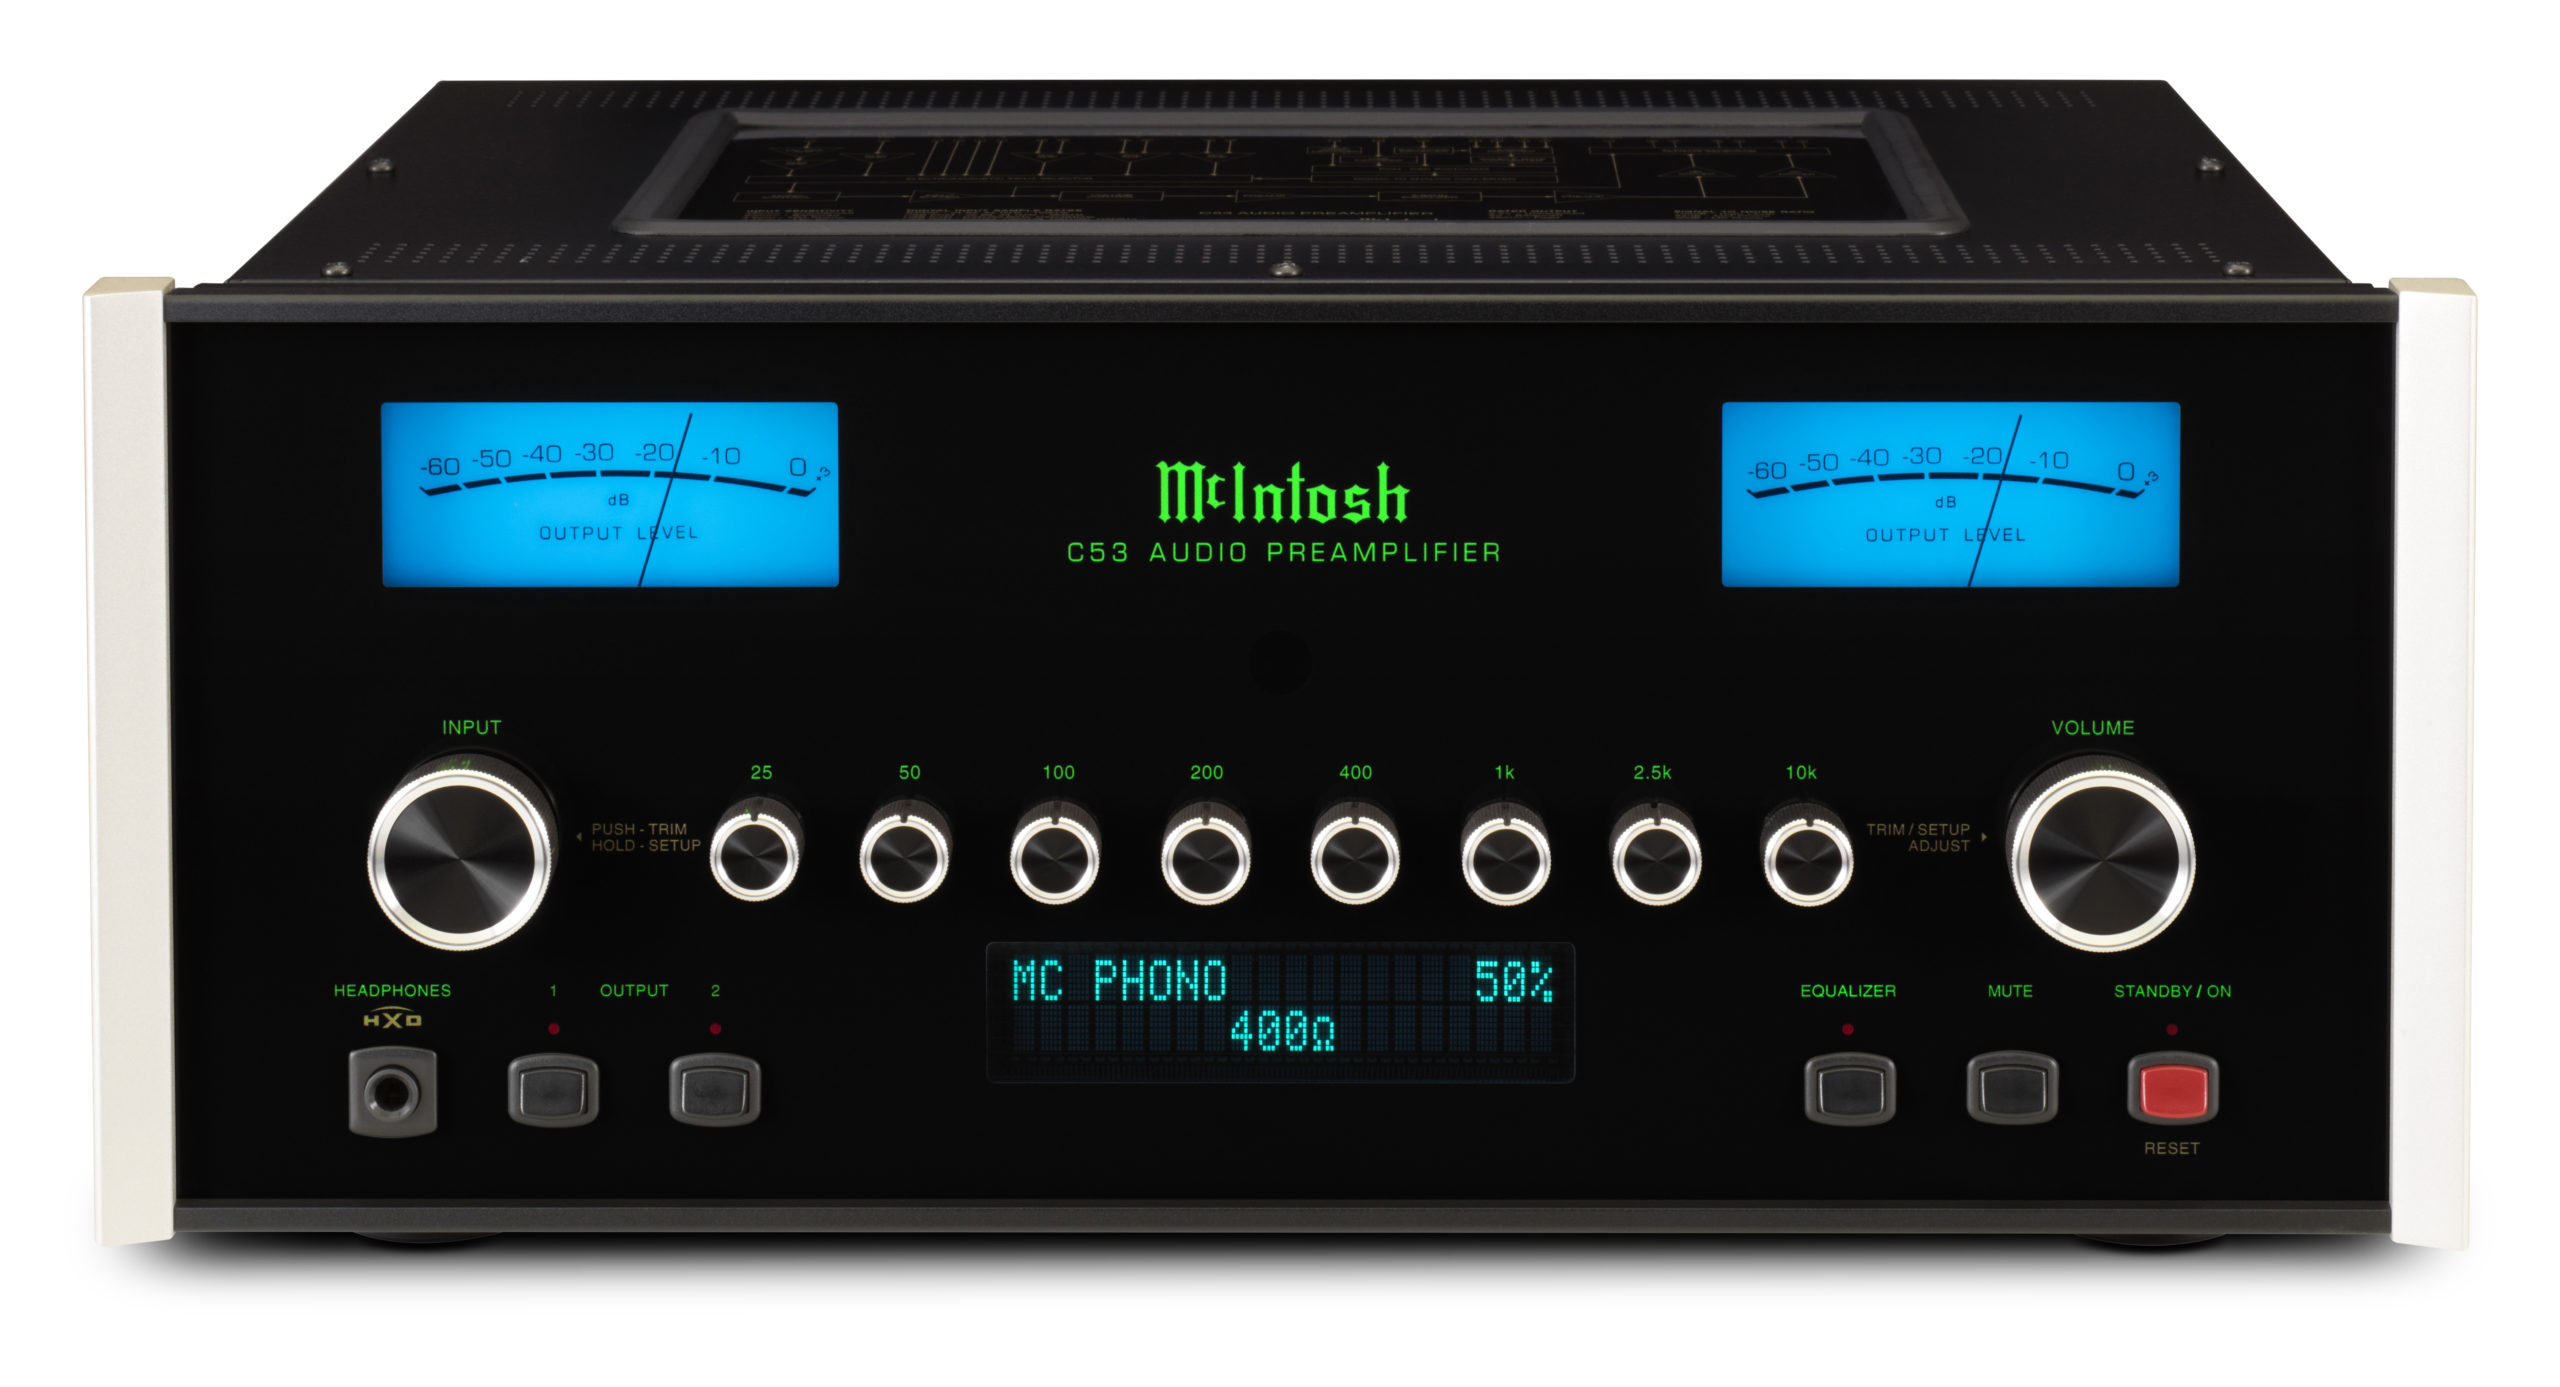 McIntosh C53 Preamplifier and MCT500 SACD/CD Transport